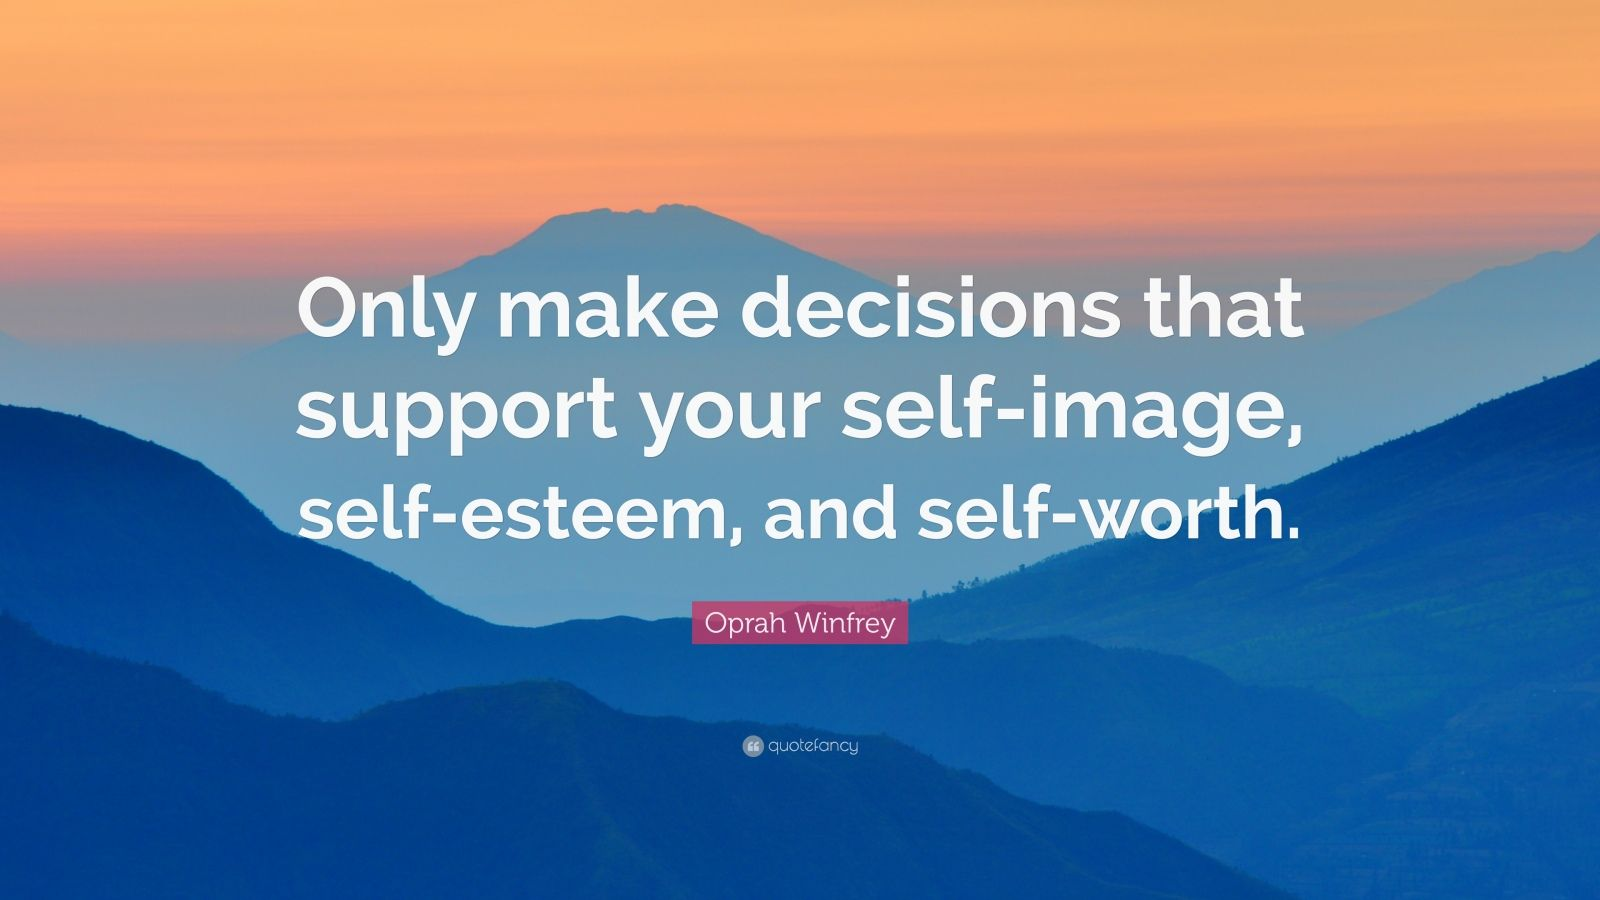 """Oprah Winfrey Quote: """"Only make decisions that support your self-image, self-esteem, and self-worth."""""""